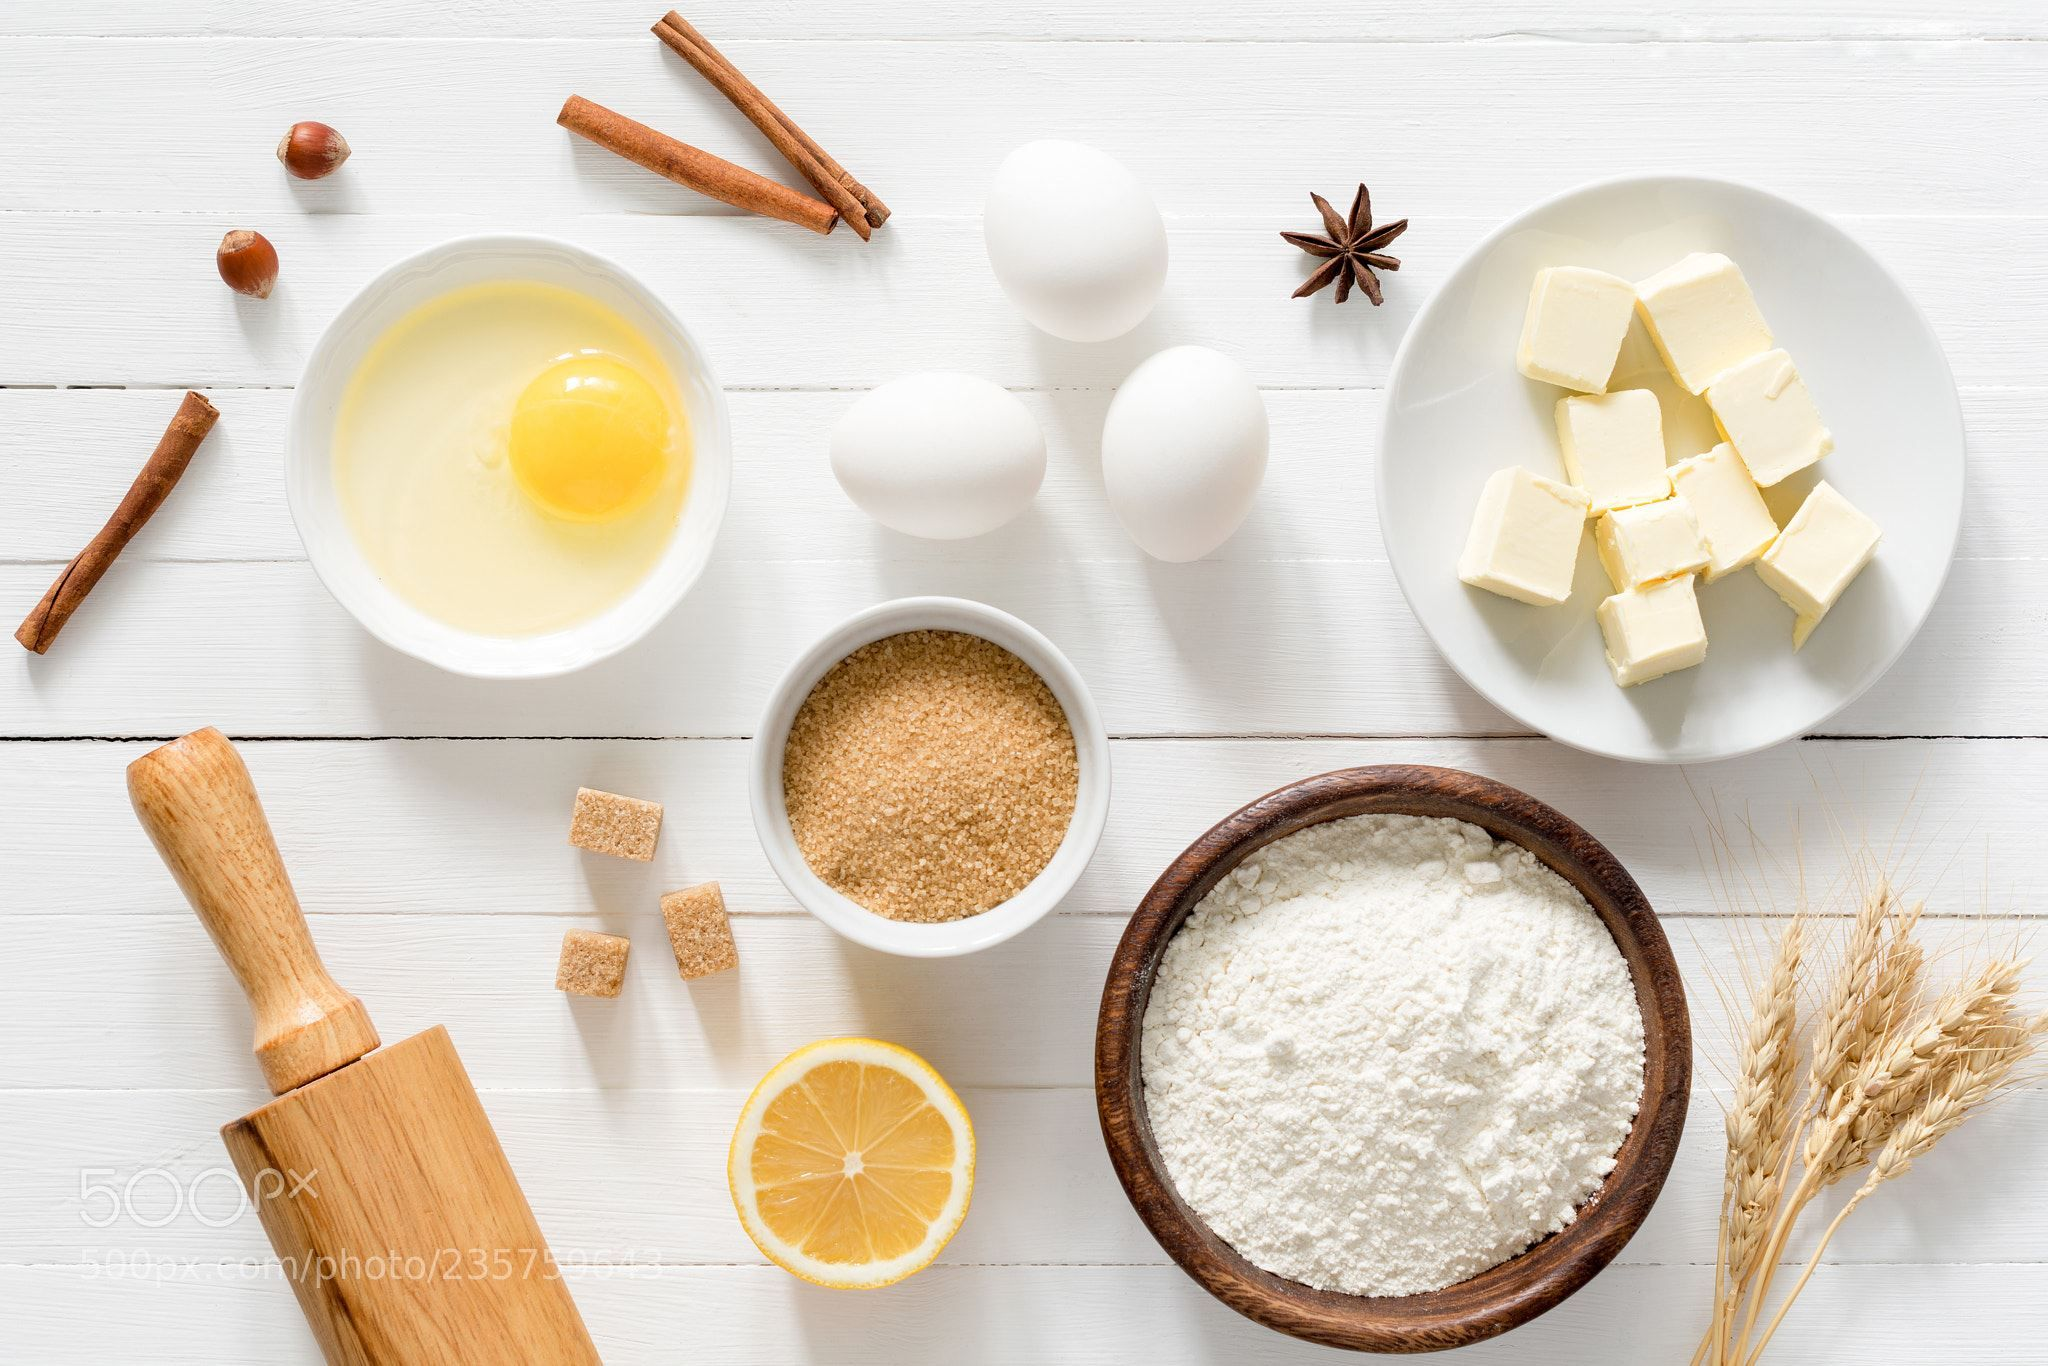 White Table Top View. Perfect Top Baking Ingredients And Kitchen Utensils  On White Wooden Table